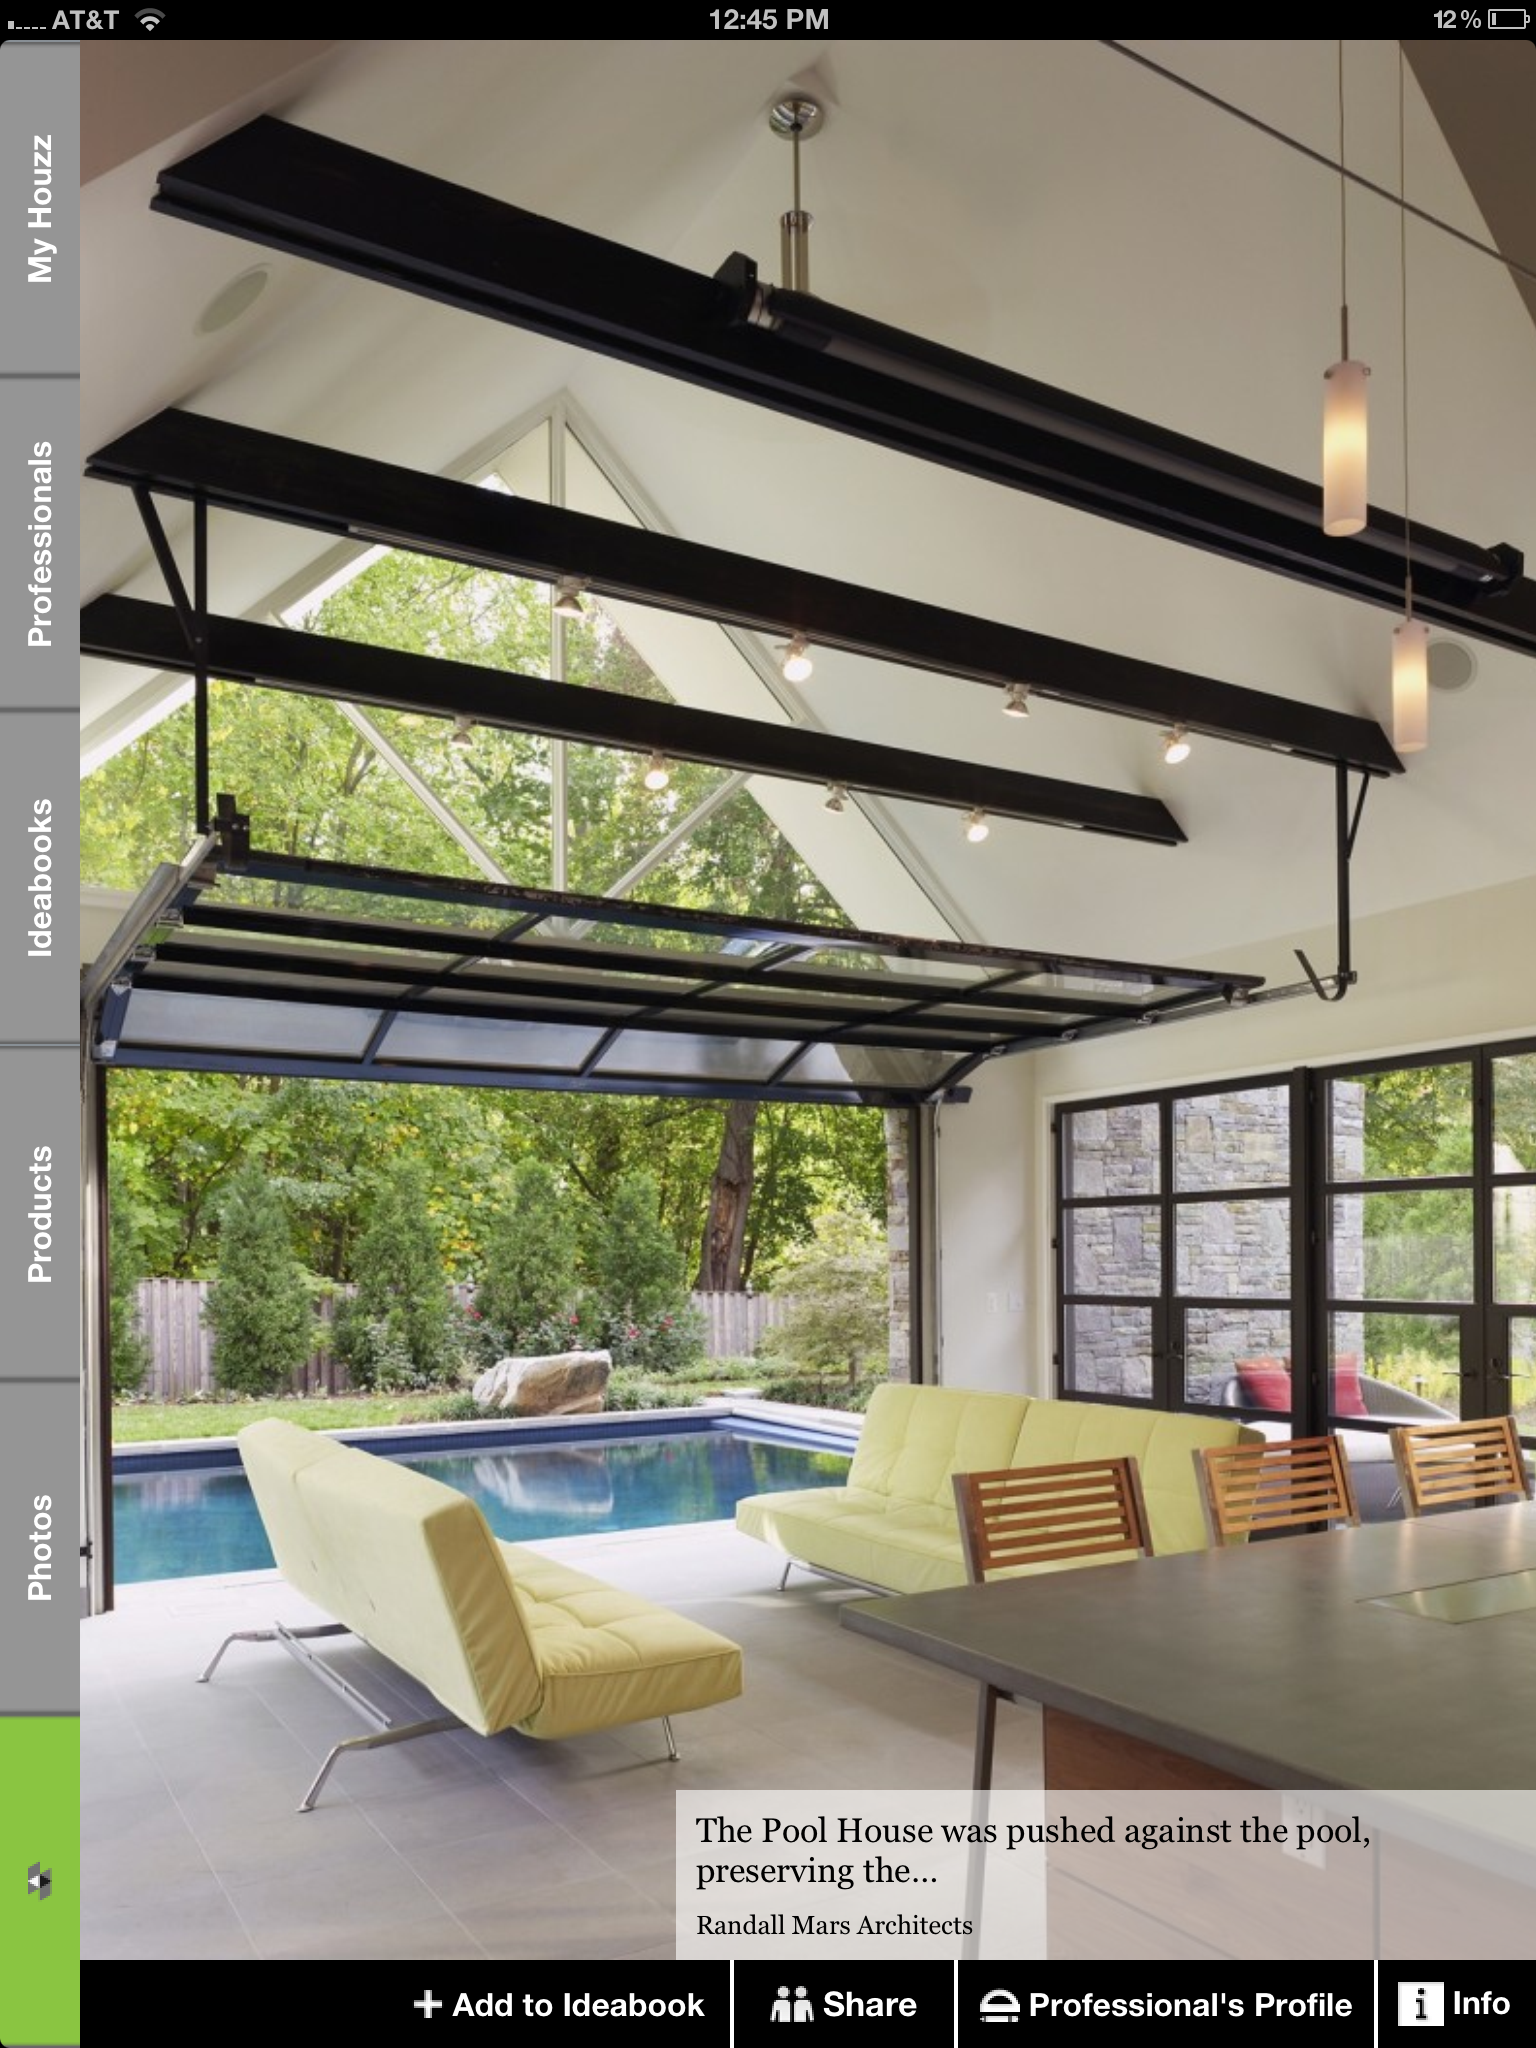 Pin by Tami Rush on houzz app | Pool house designs, Glass garage